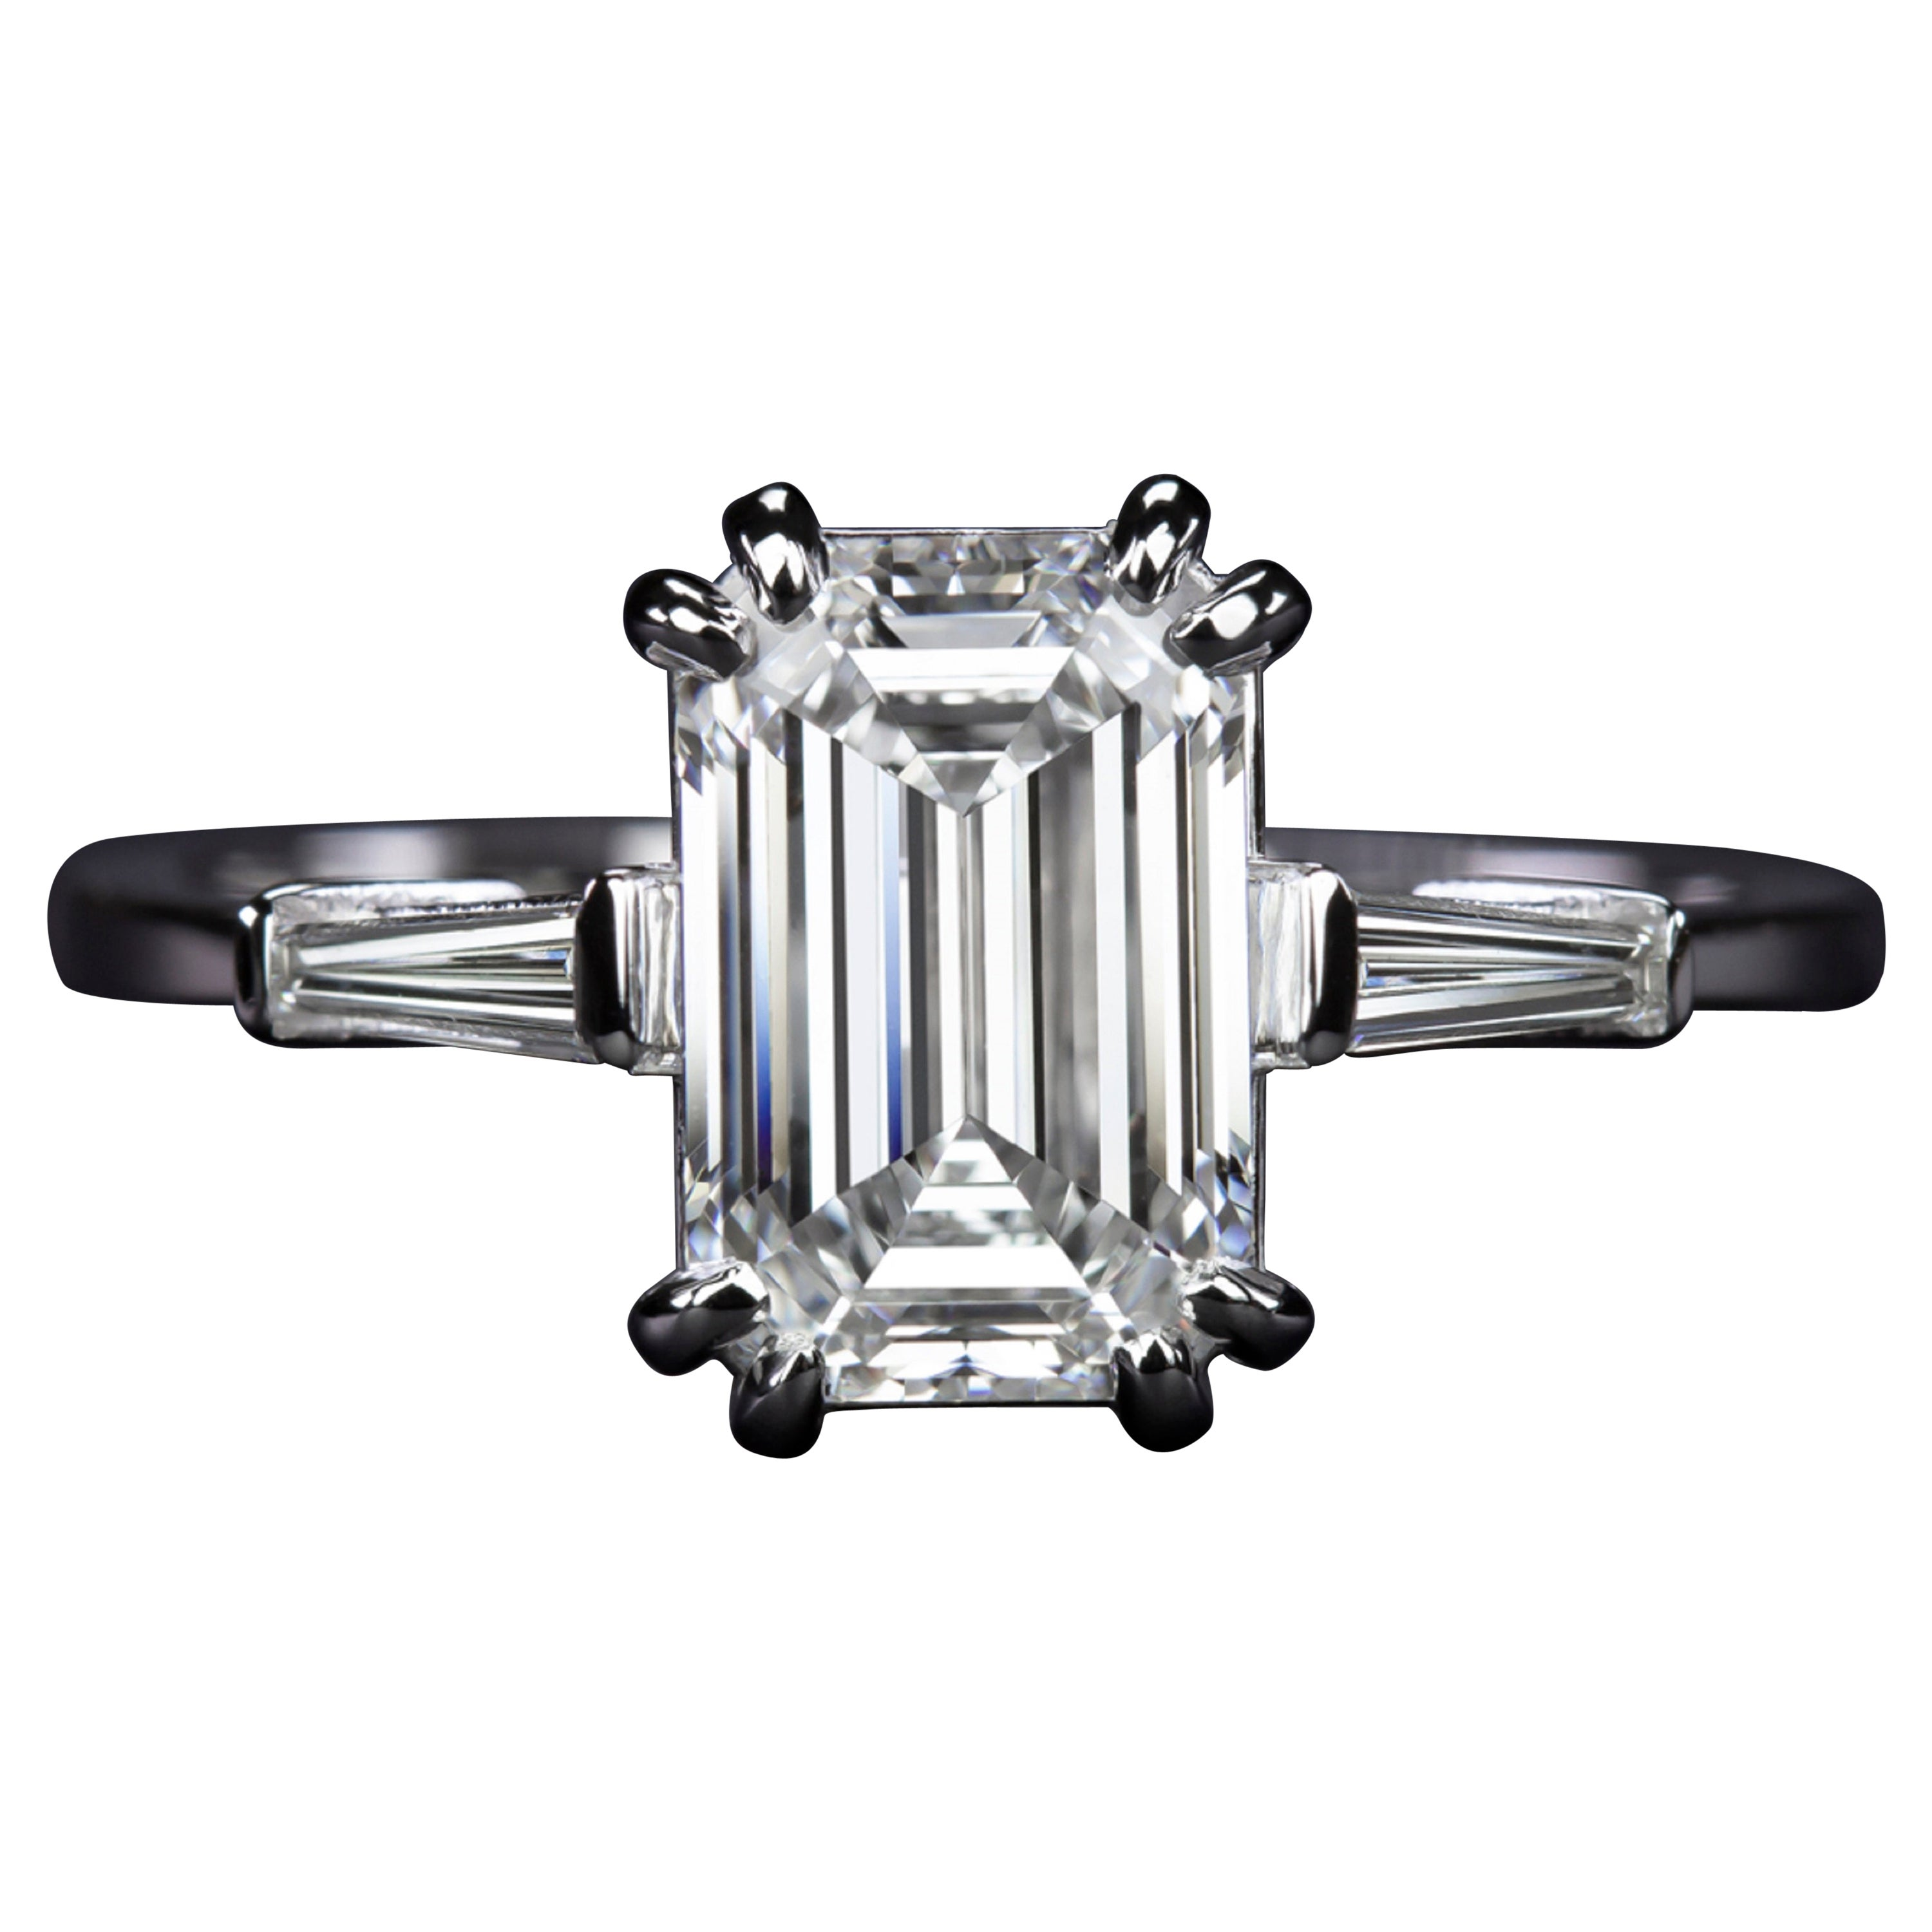 Exceptional GIA Certified 2.20 Carat Emerald Cut Diamond Ring